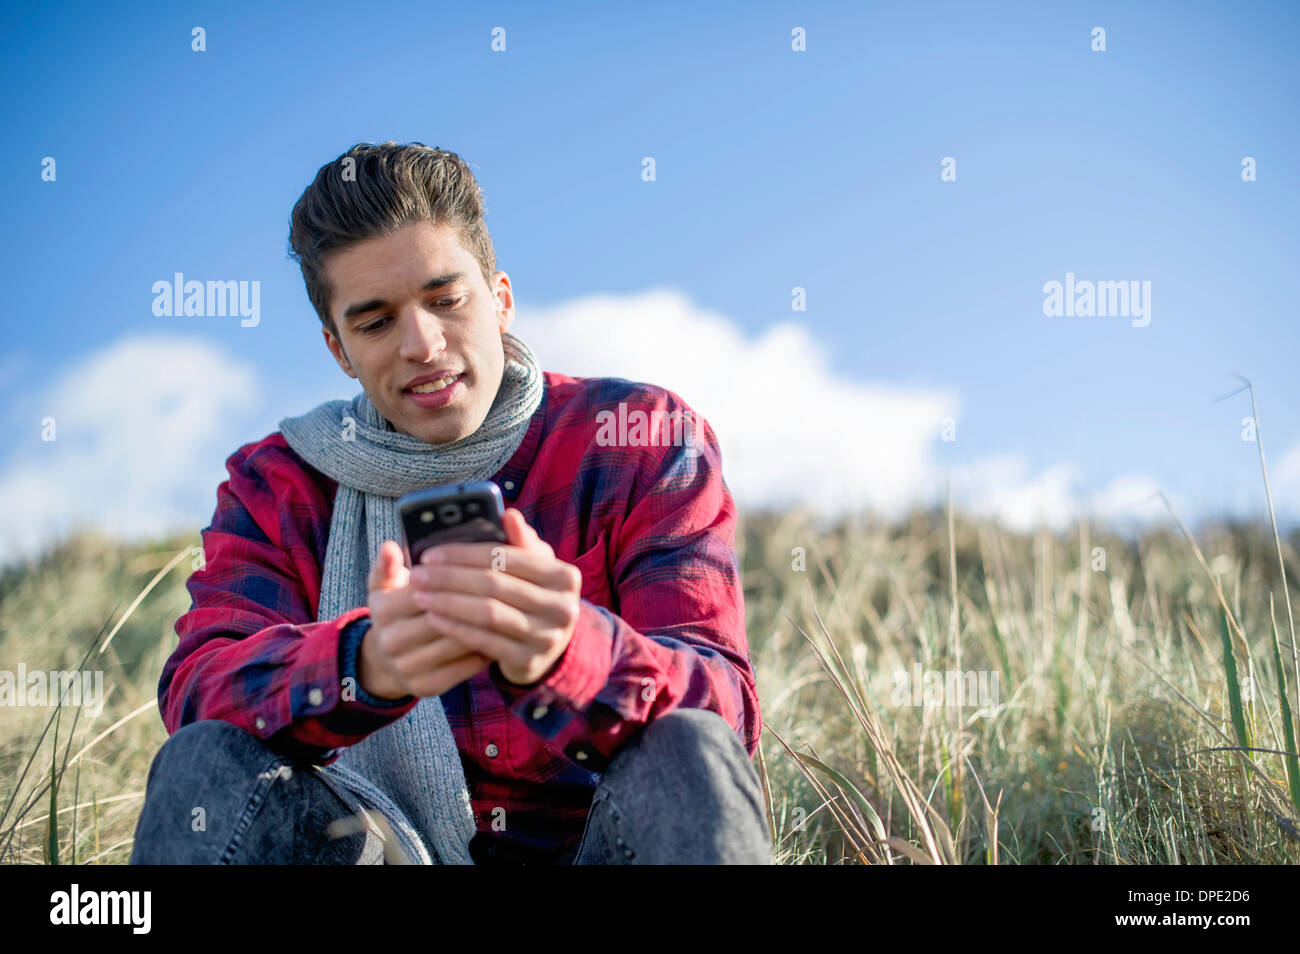 Young man sitting on grass using smartphone - Stock Image